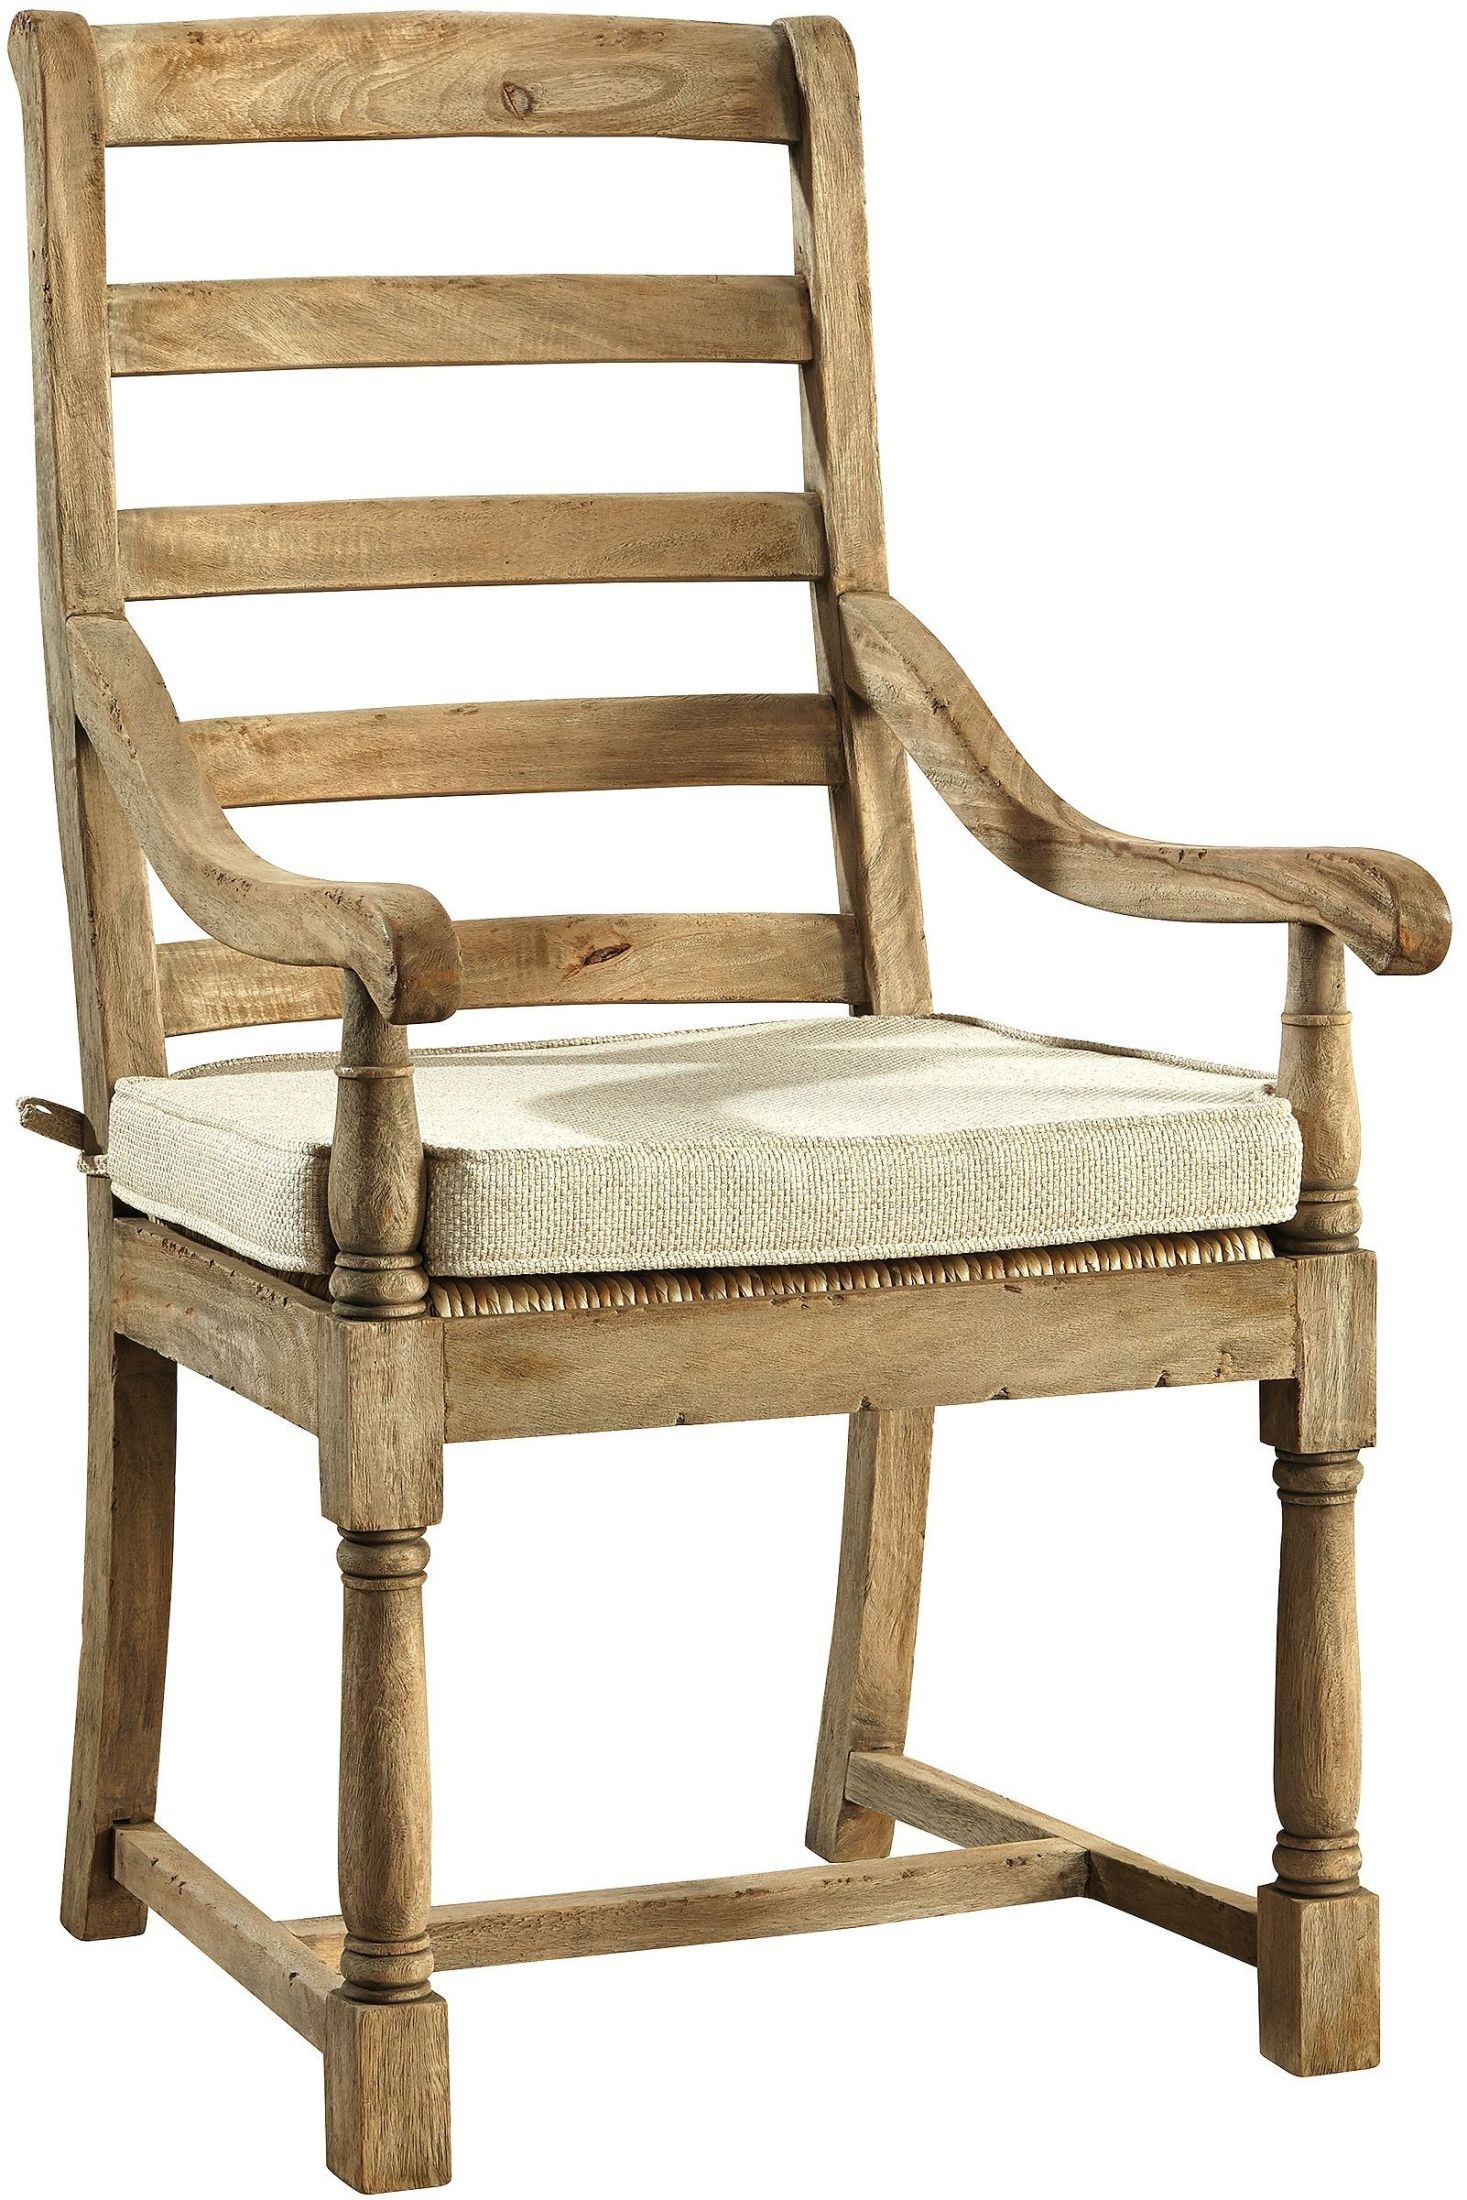 Driftwood Chair Mango Driftwood Arm Chair Set Of 2 From Furniture Classics